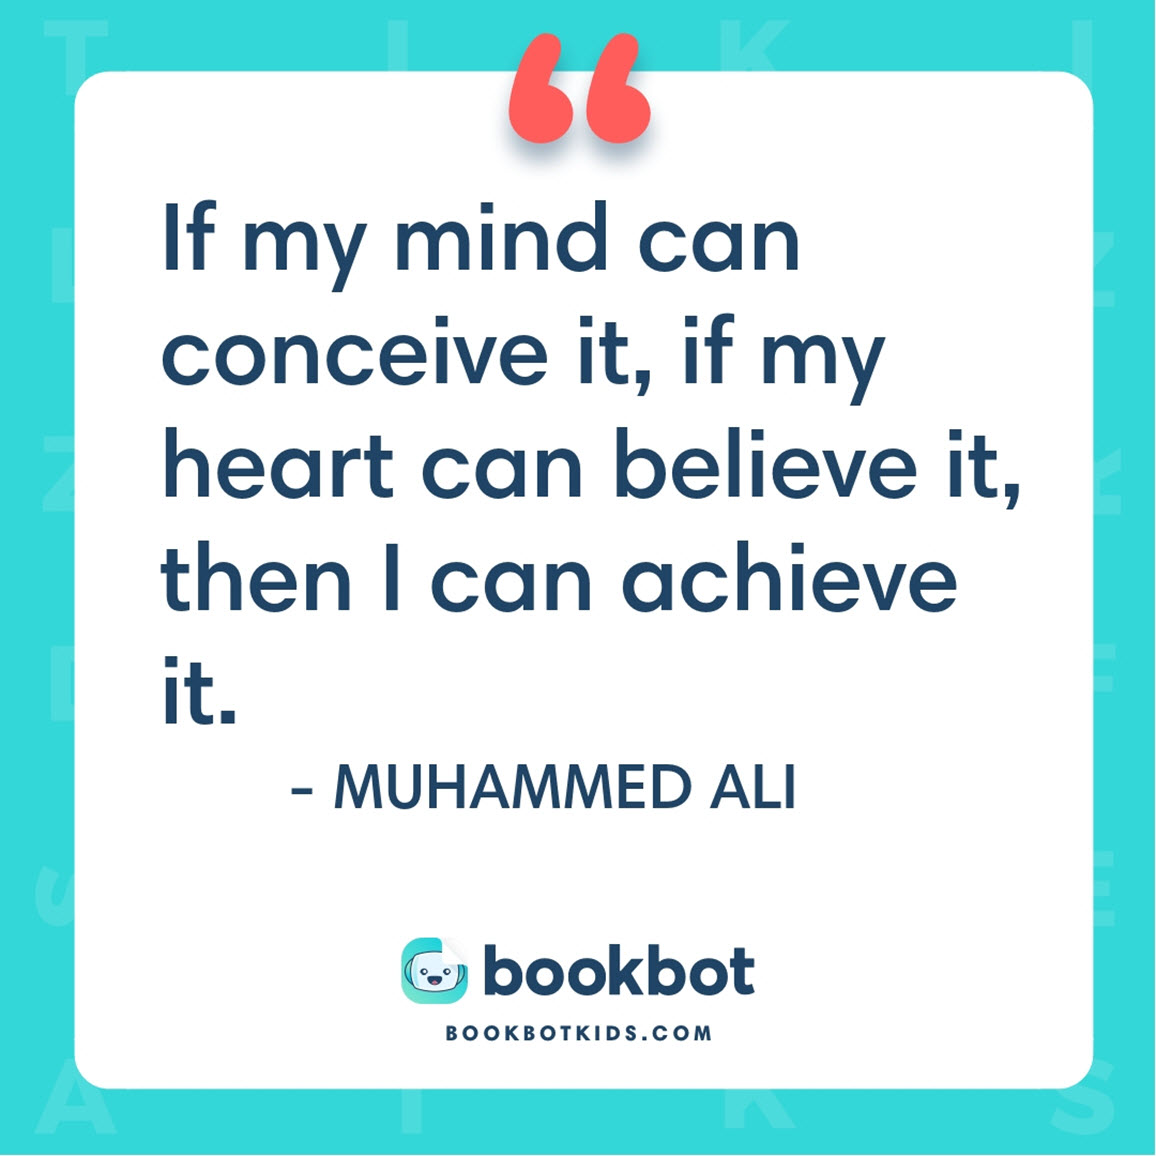 If my mind can conceive it, if my heart can believe it, then I can achieve it. – Muhammed Ali